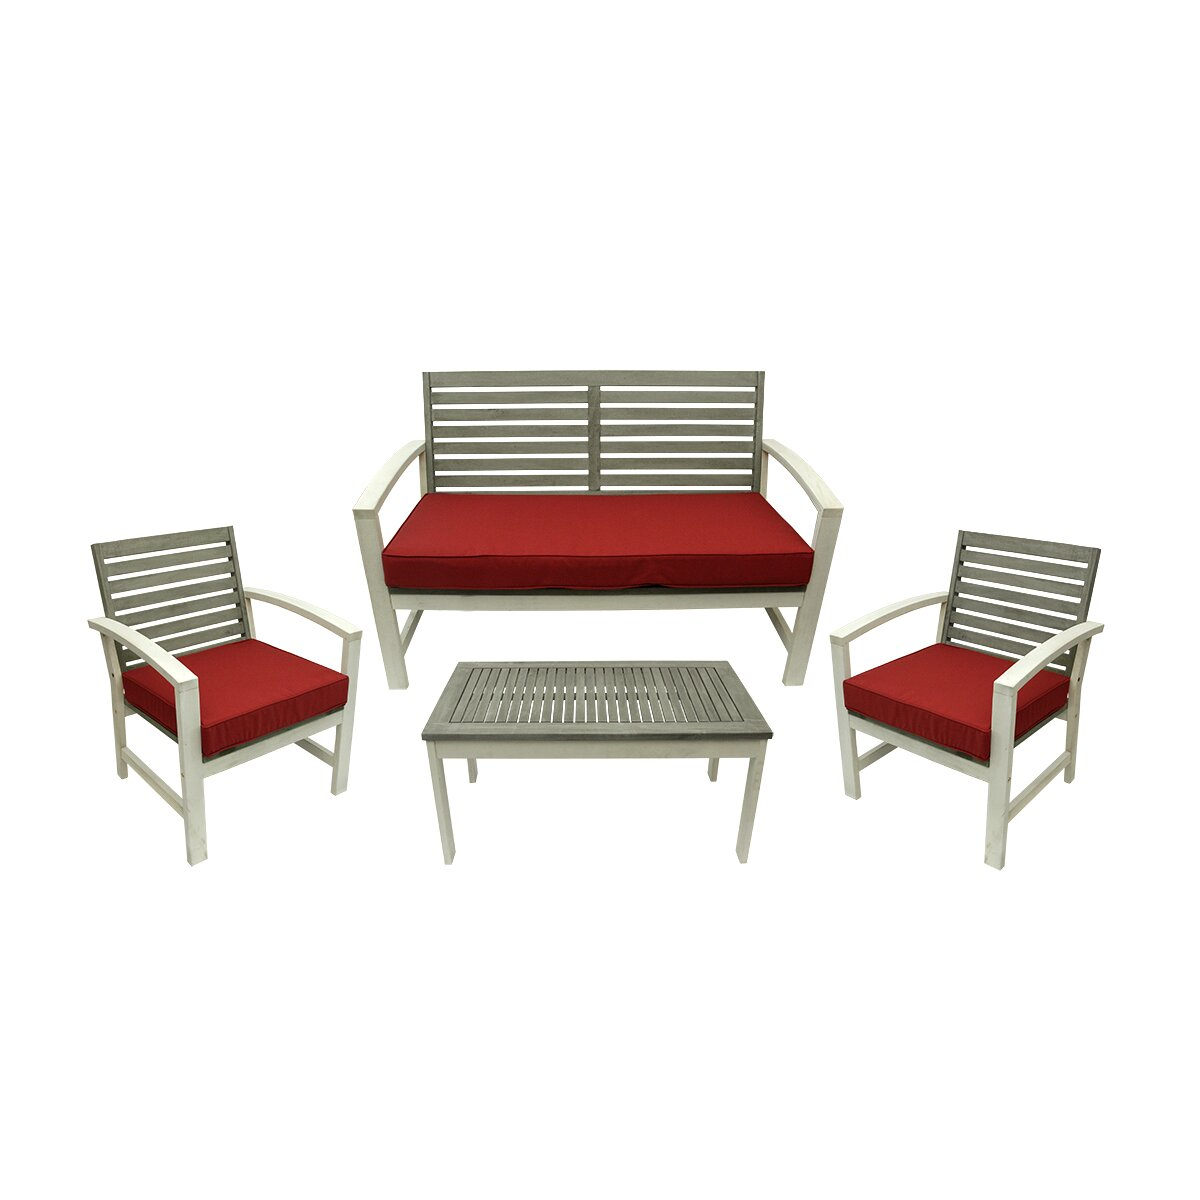 northlight seasonal 4 piece acacia wood outdoor furniture set